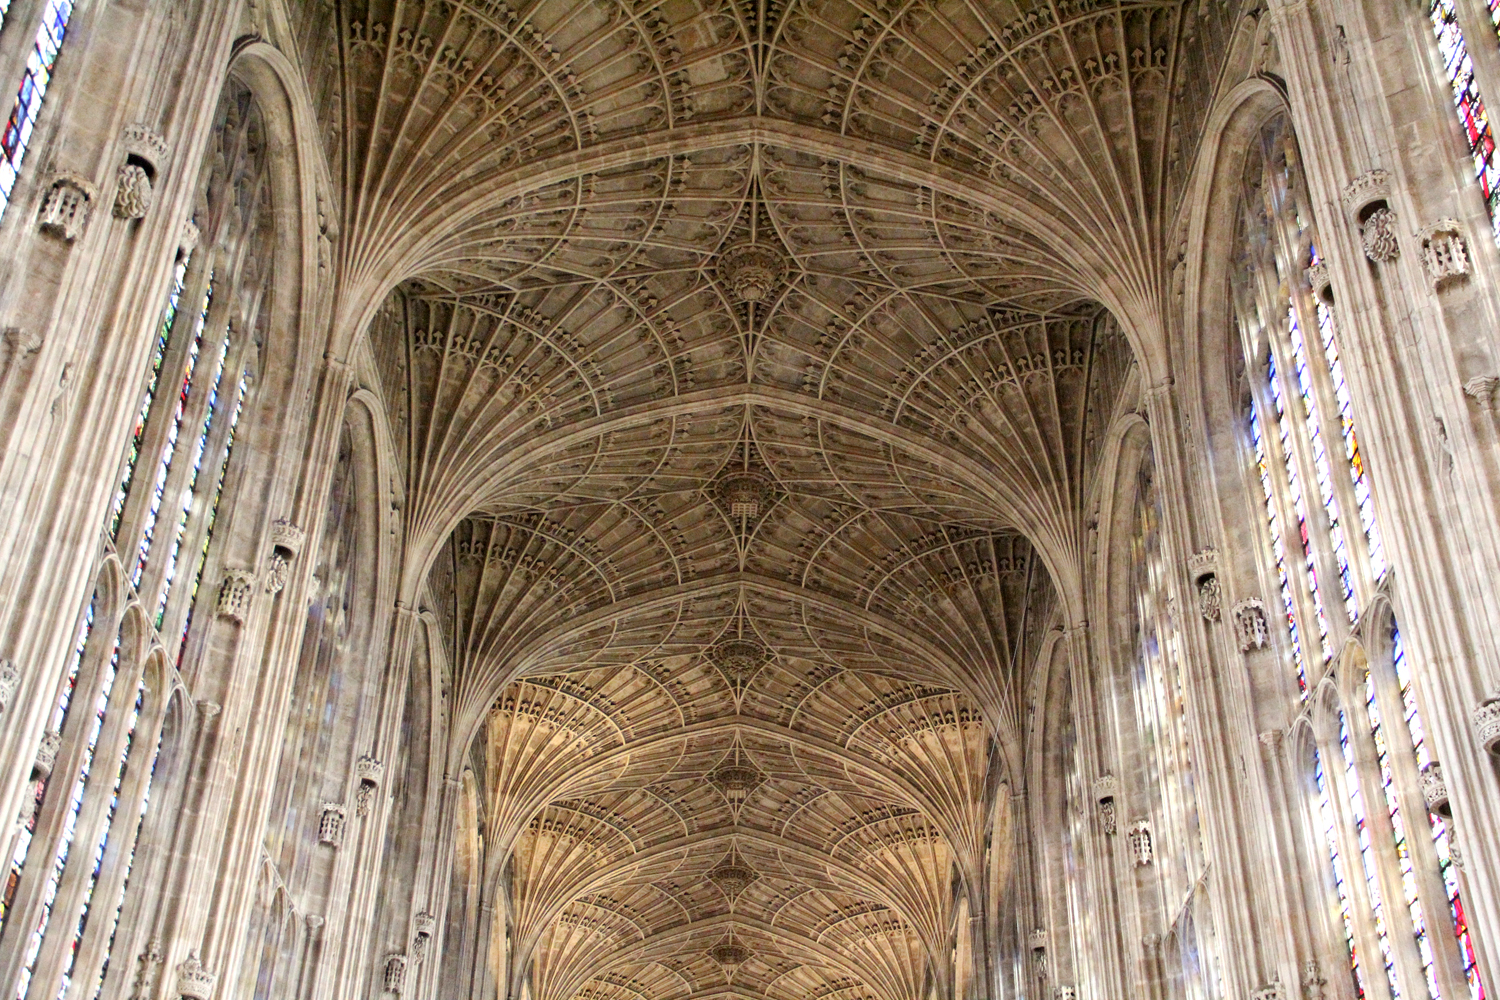 A Form Of Vault Used In The Gothic Style Which Ribs Are All Same Curve And Spaced Equidistantly Manner Resembling Fan